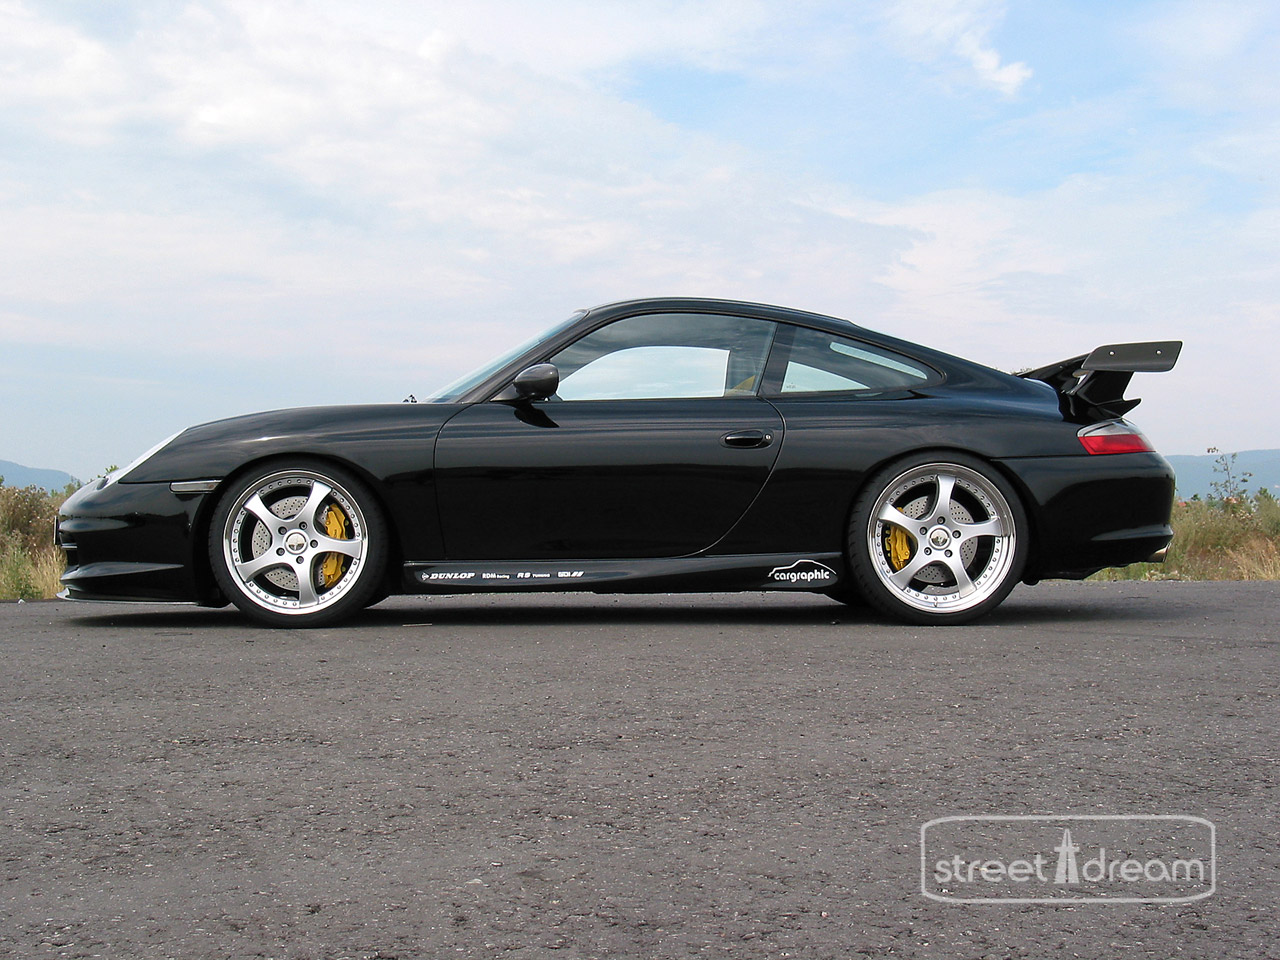 Cargraphic Porsche 996 GT3 RSC photo 26747